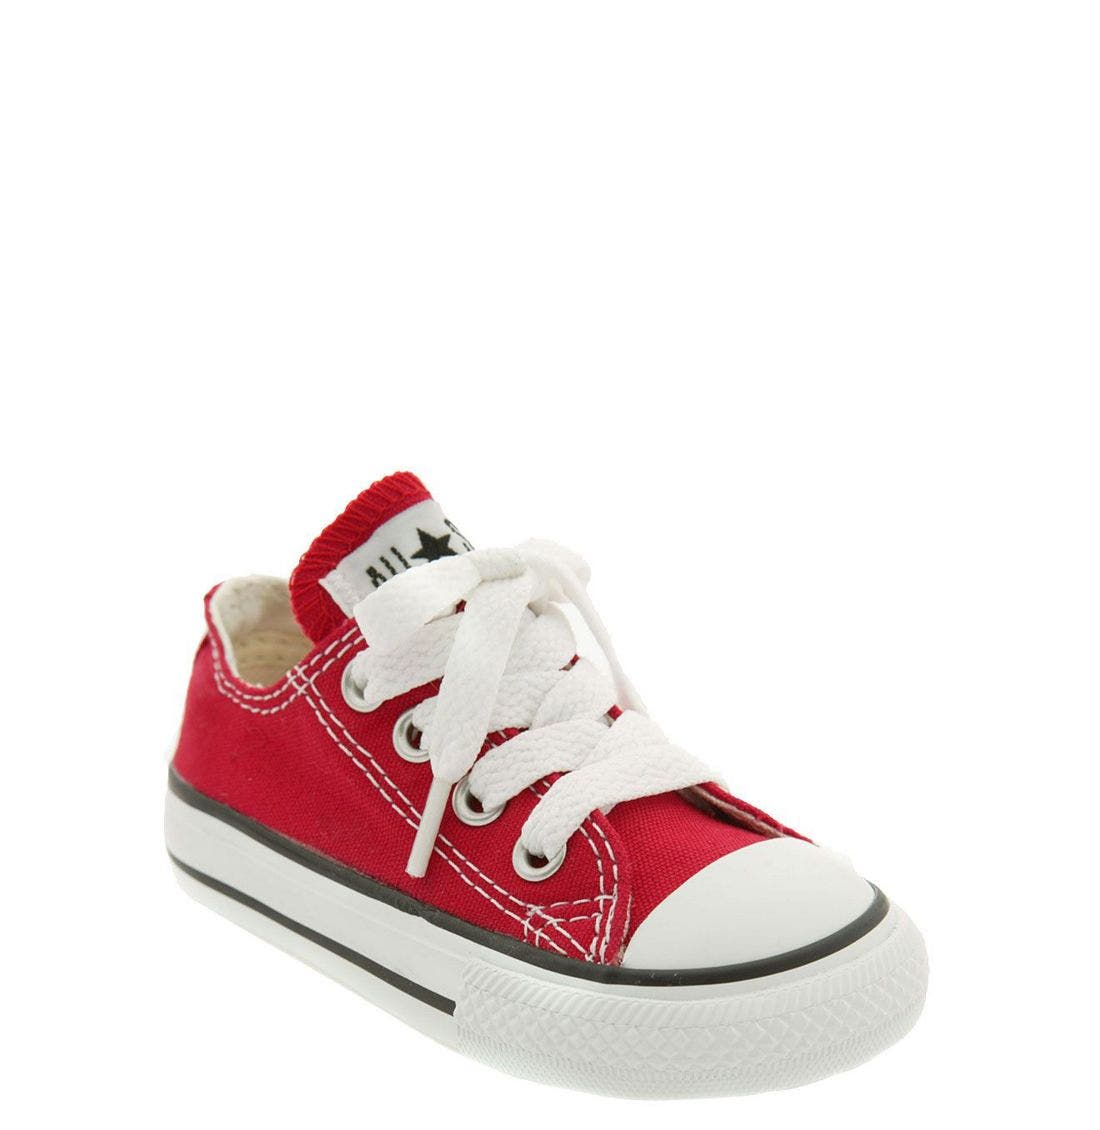 CONVERSE Chuck Taylor<sup>®</sup> Low Top Sneaker, Main, color, RED